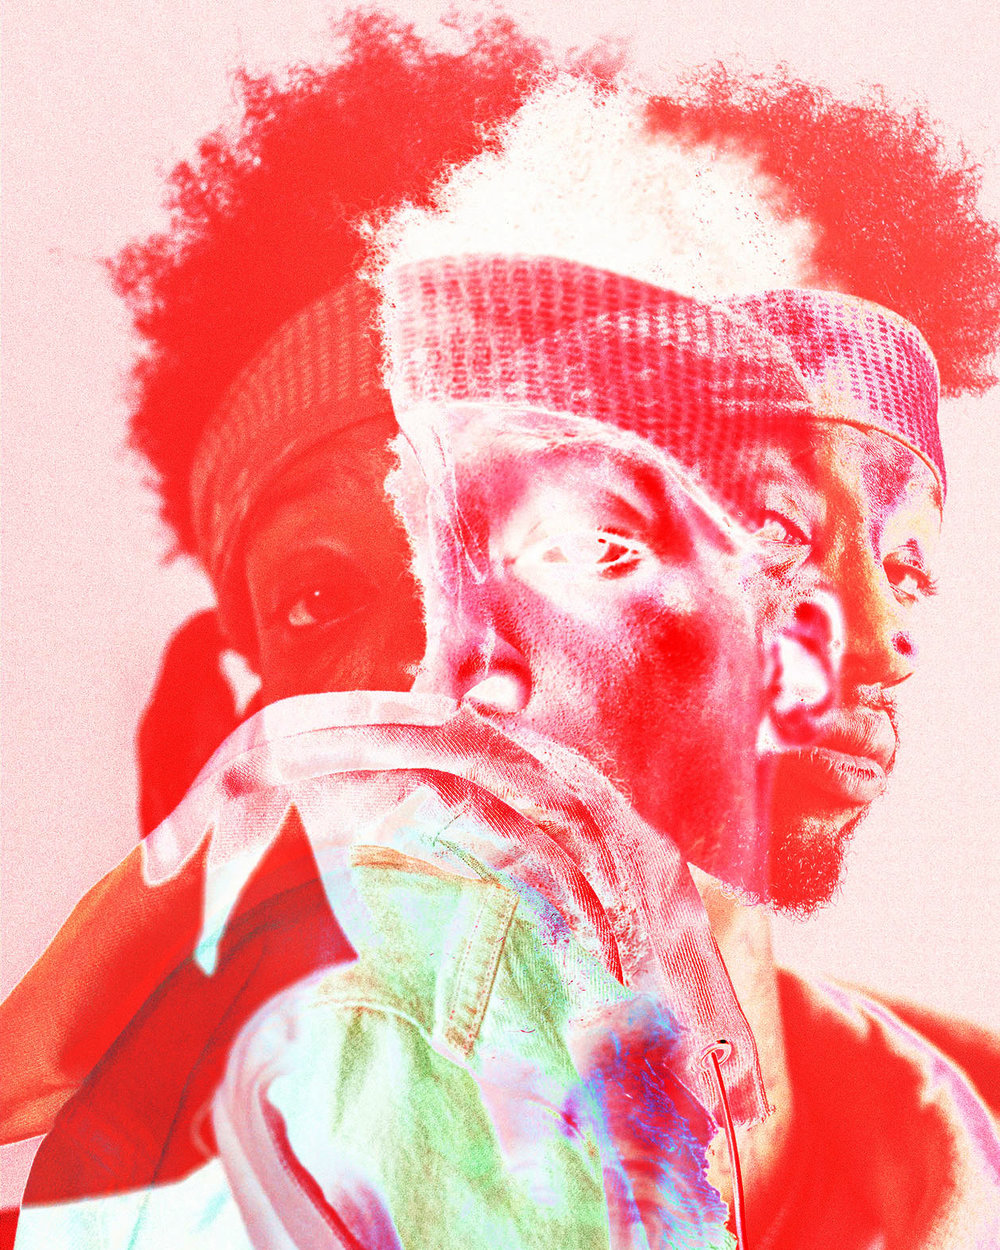 SONNY DIGITAL X PUMA